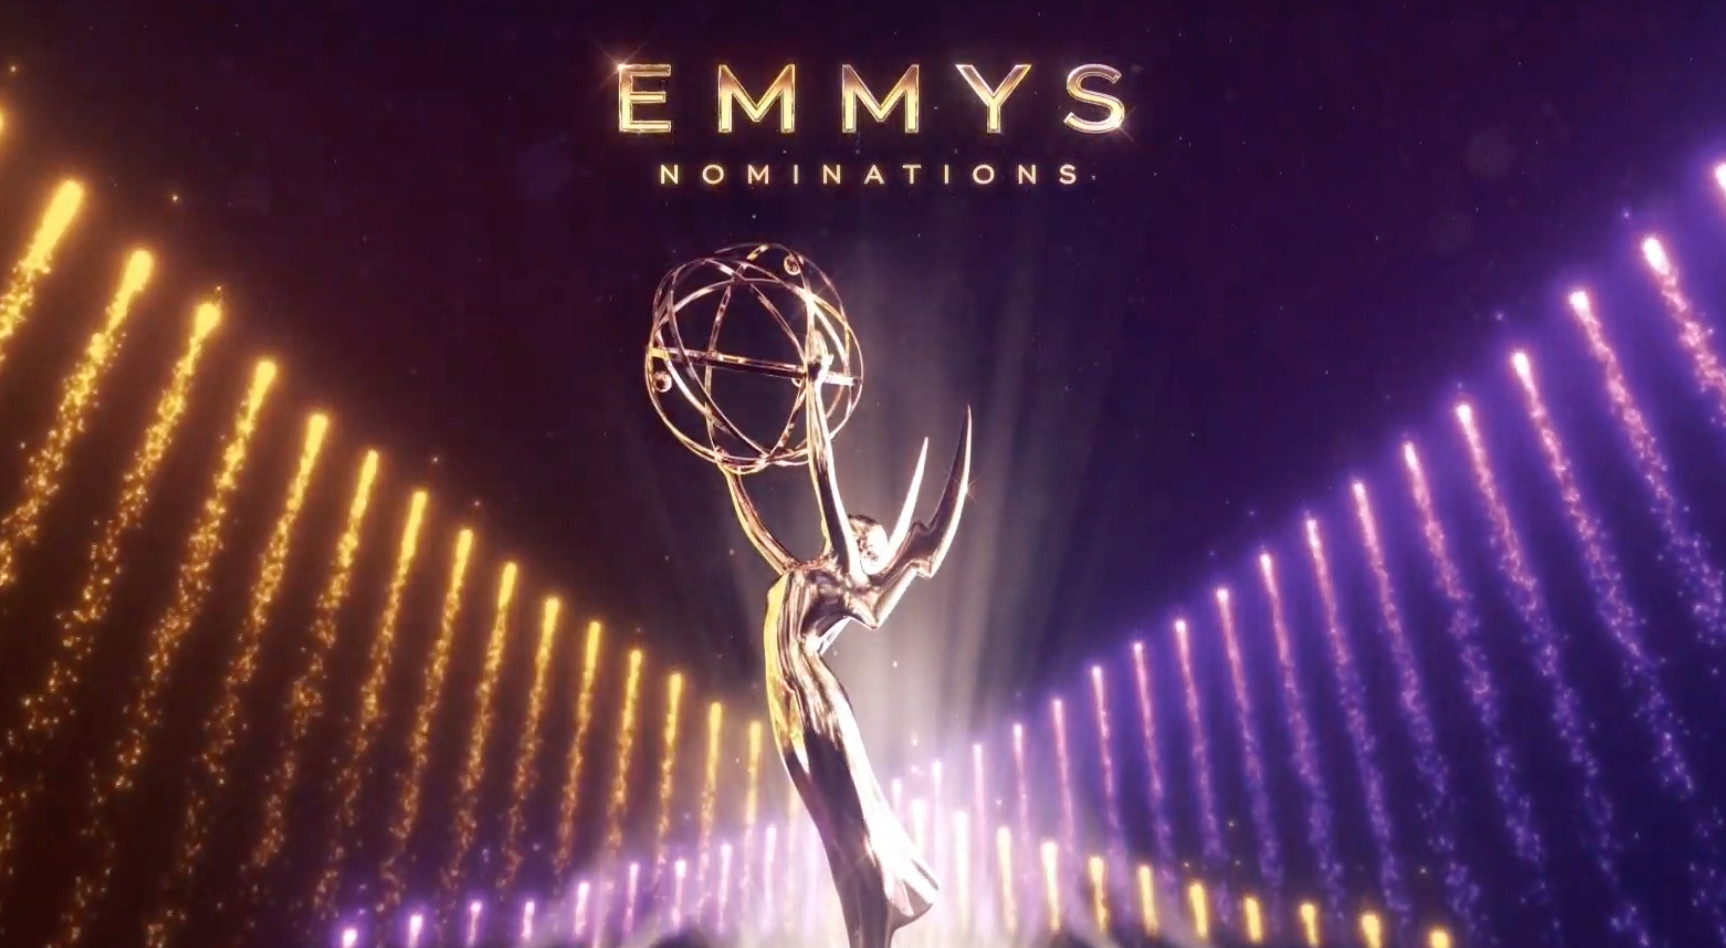 Watch the 2019 Emmy Nominations Announcement Live